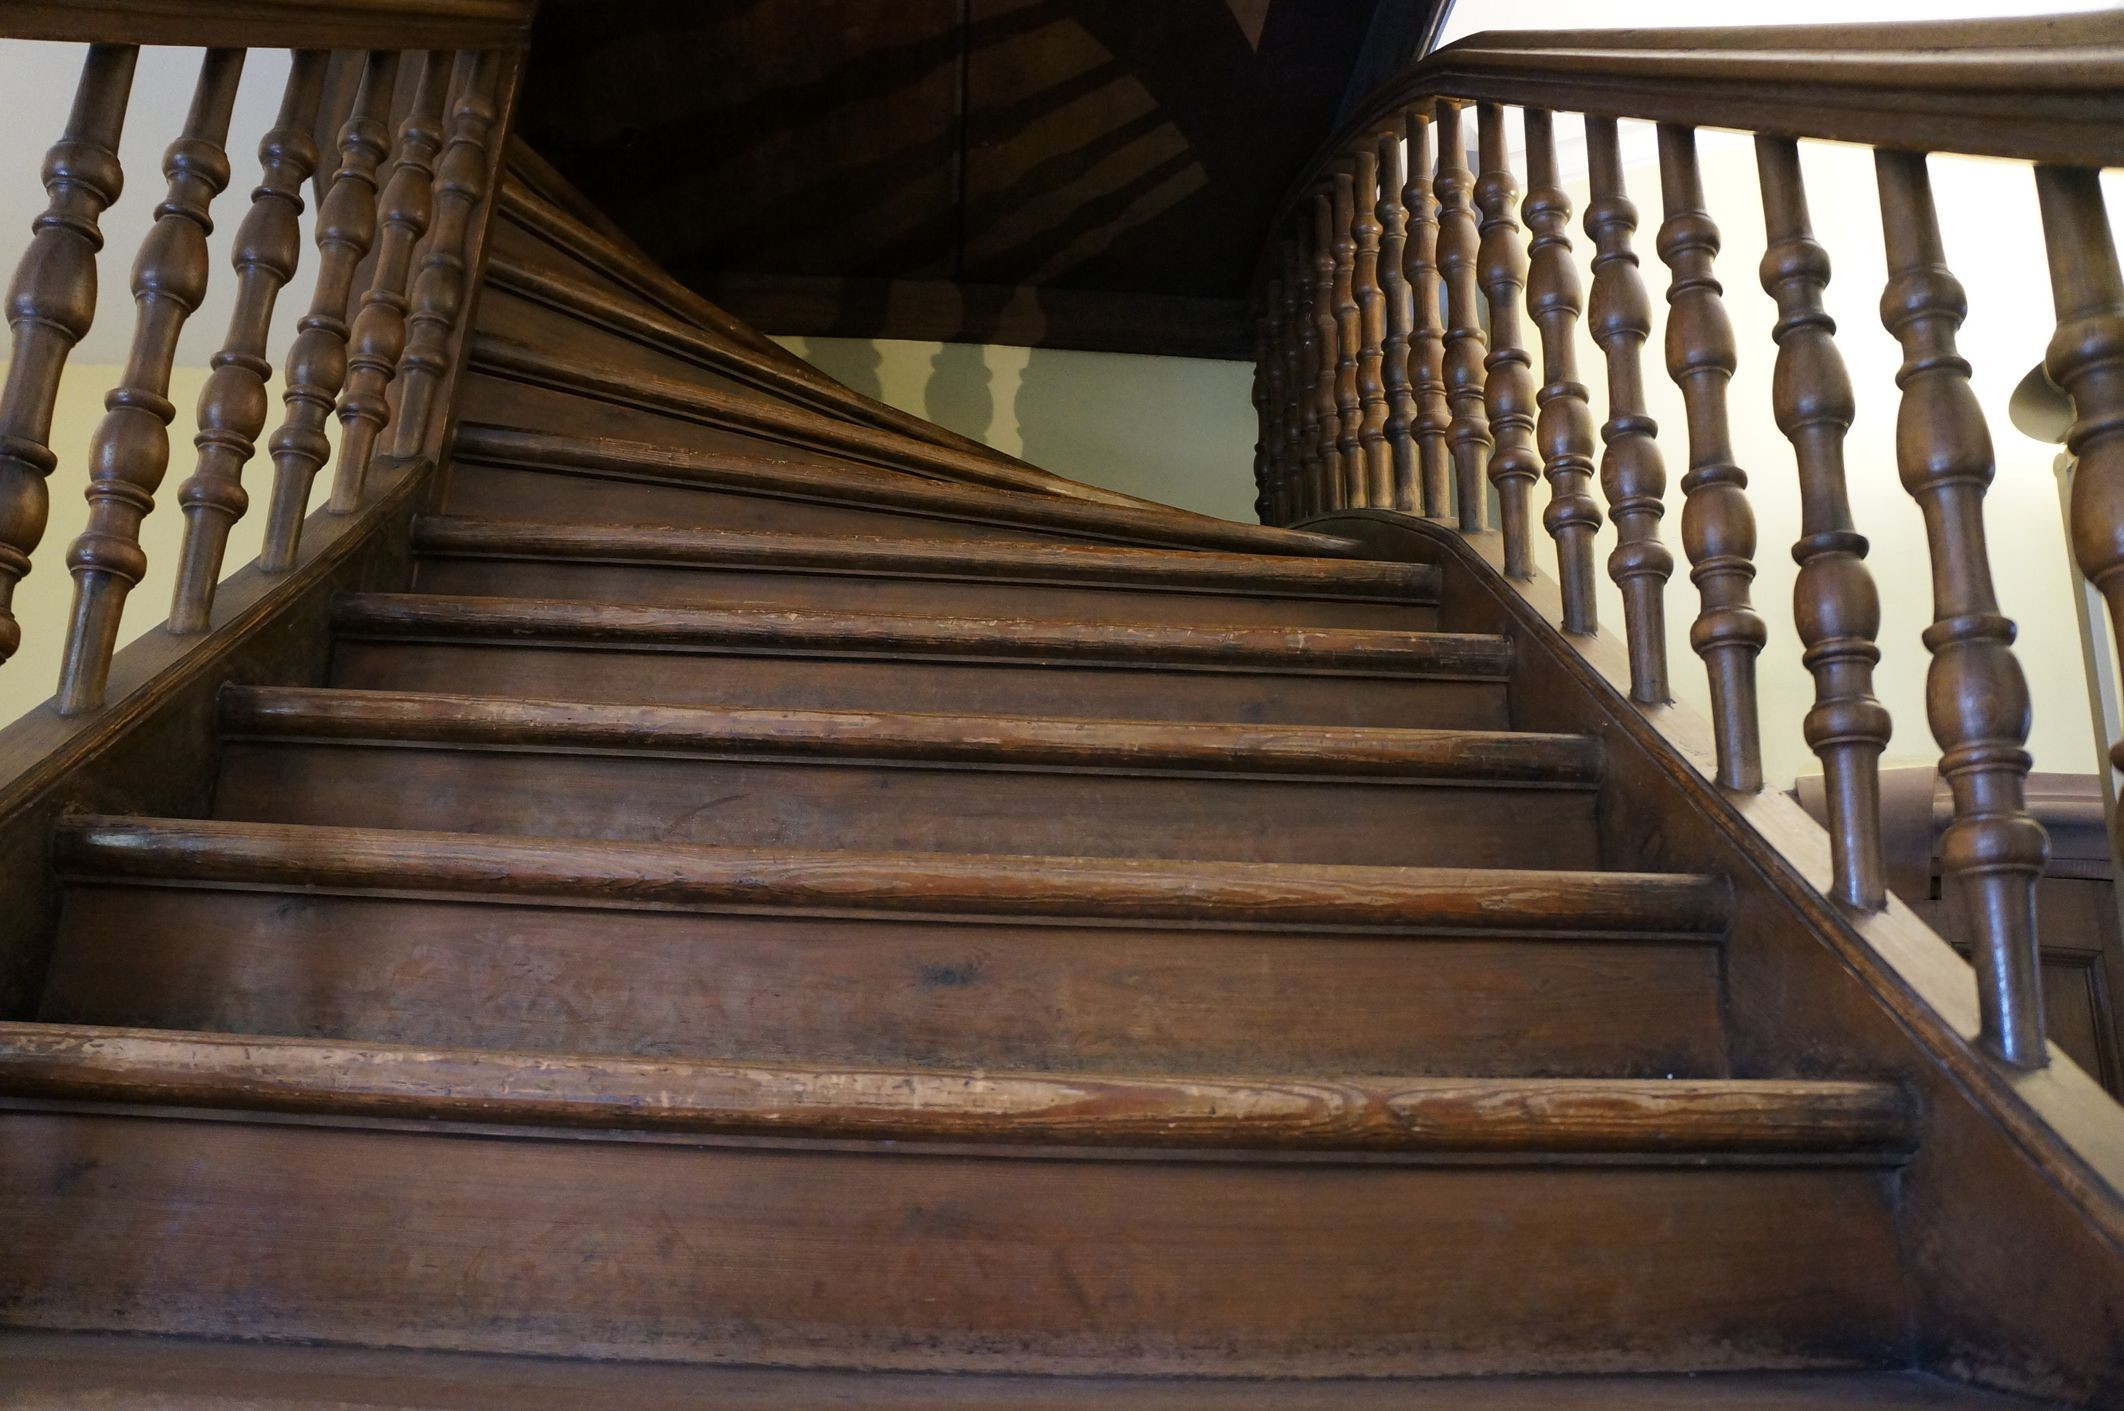 hardwood floor glue injection kit of fix creaky stairs with this amazingly easy trick regarding wooden stairs 510587539 576eab965f9b58587566bb4e